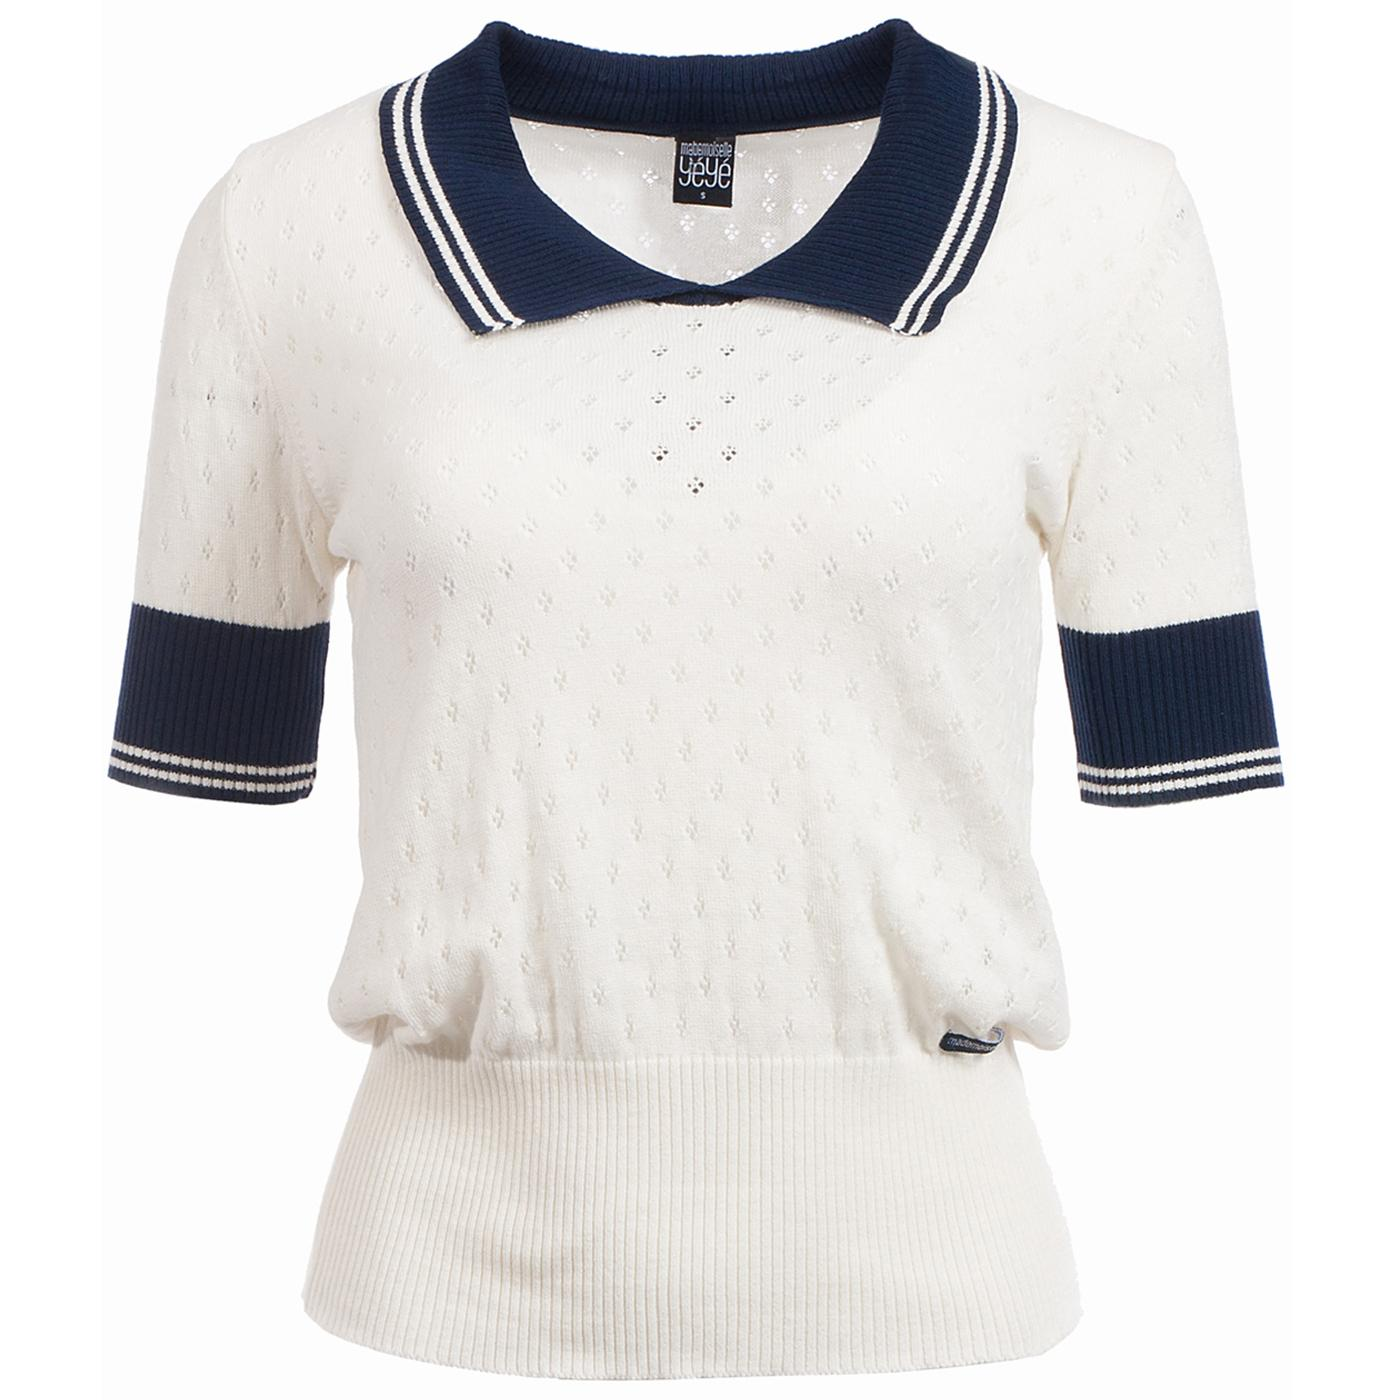 Kate MADEMOISELLE YEYE Mod Perf Knit Polo Top (W)